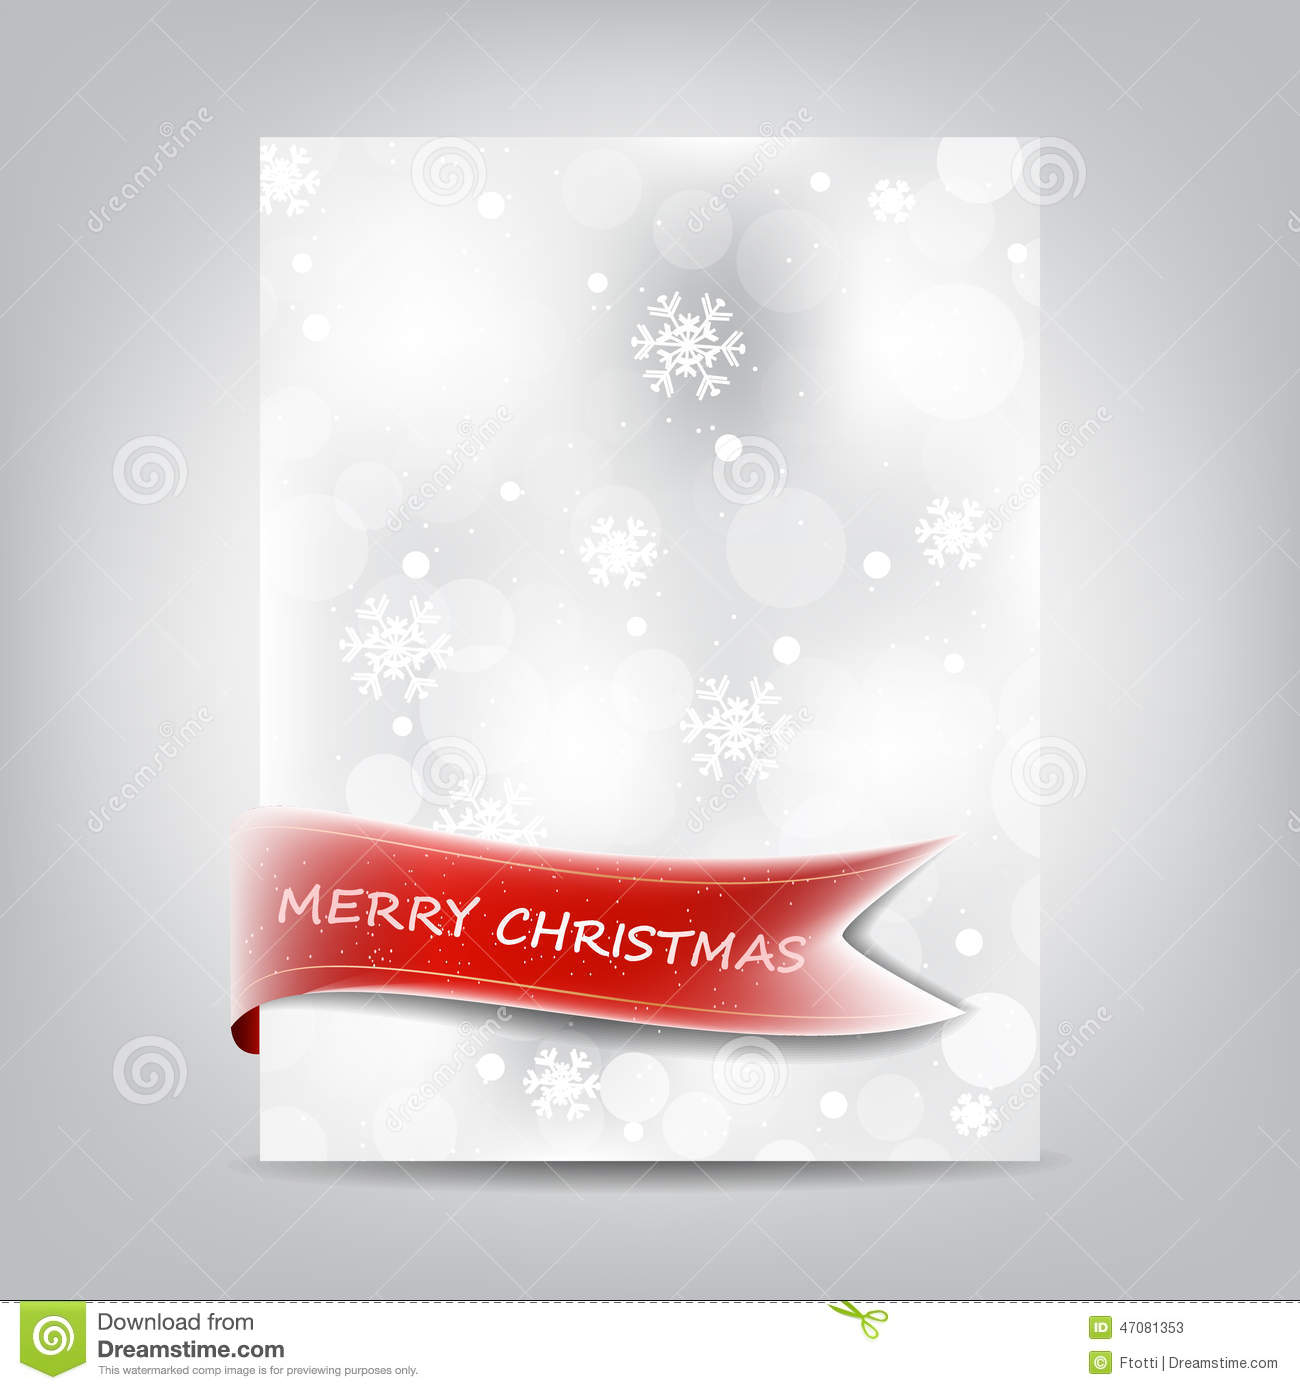 Editing Background Banner: Christmas Template, Paper Banner With Red Ribbon And